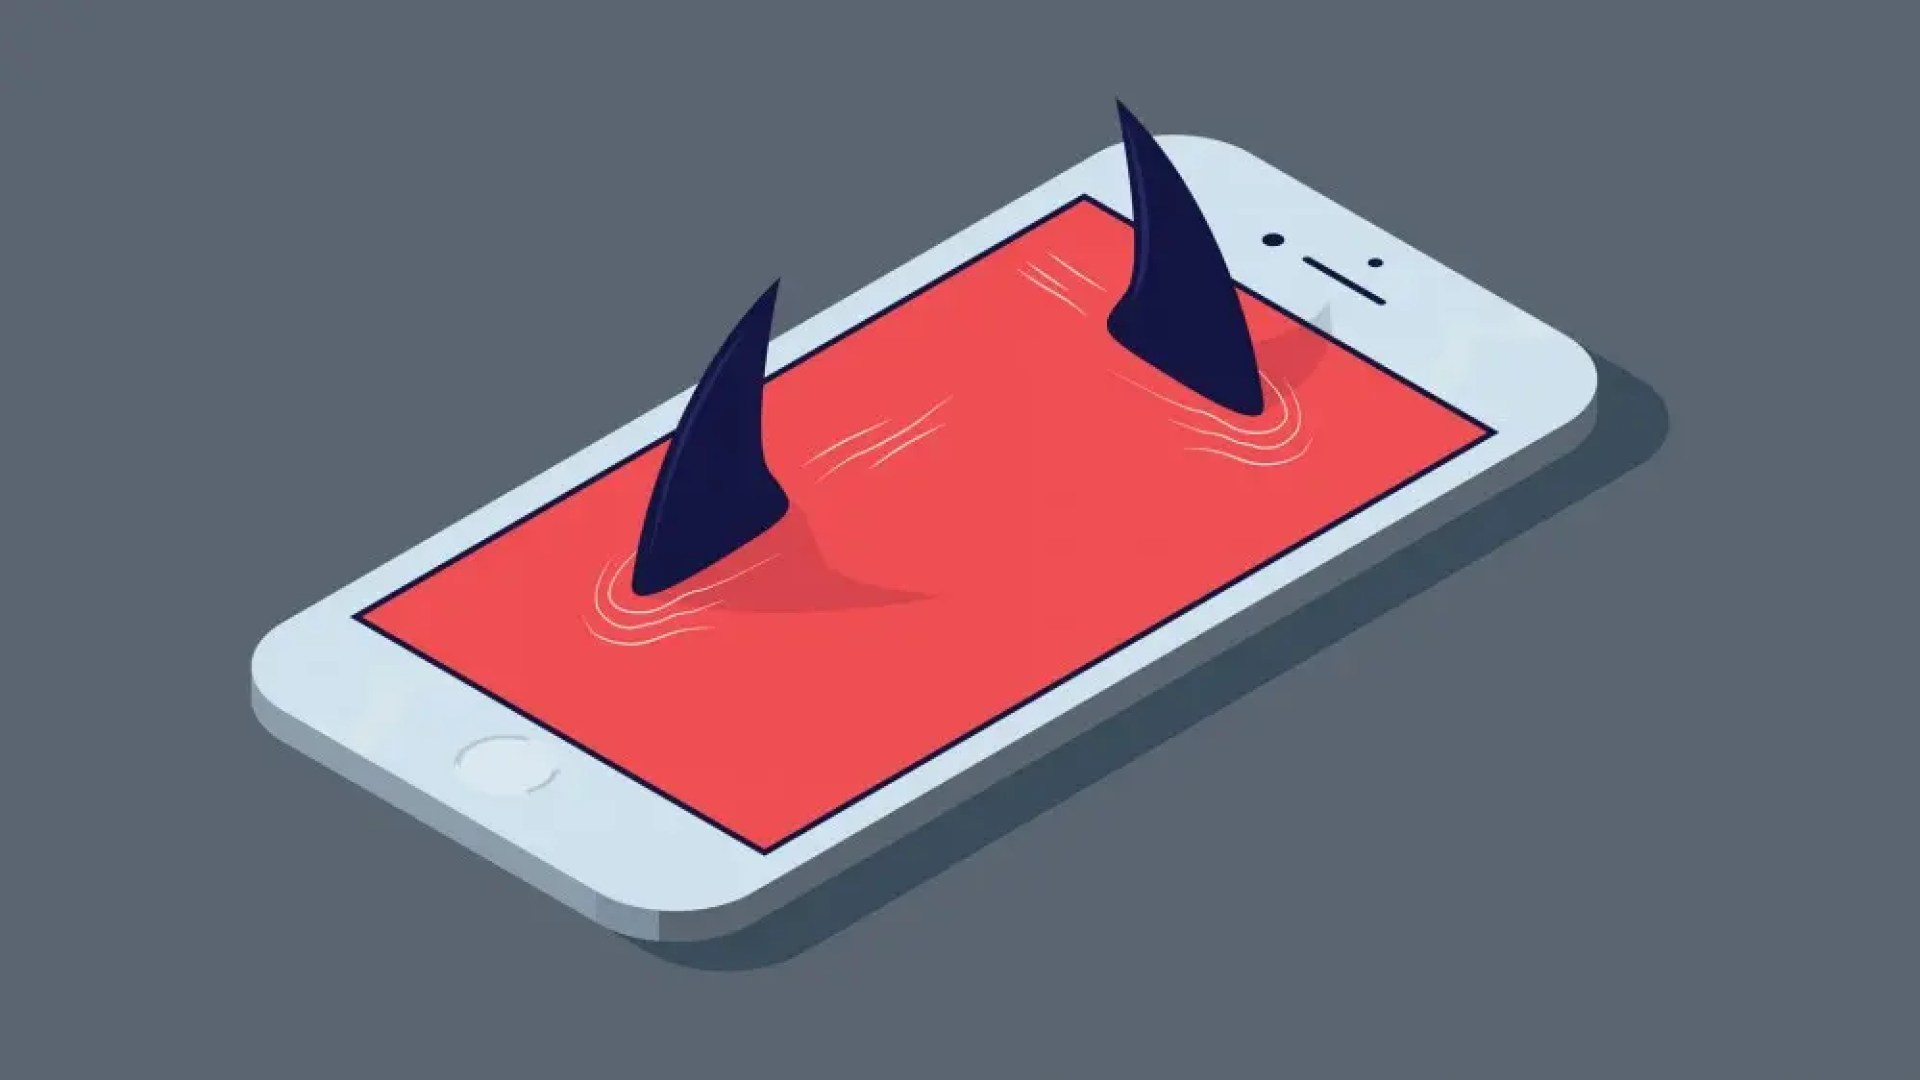 """An iPhone with a red screen and shark fins """"swimming around"""" in the screen."""